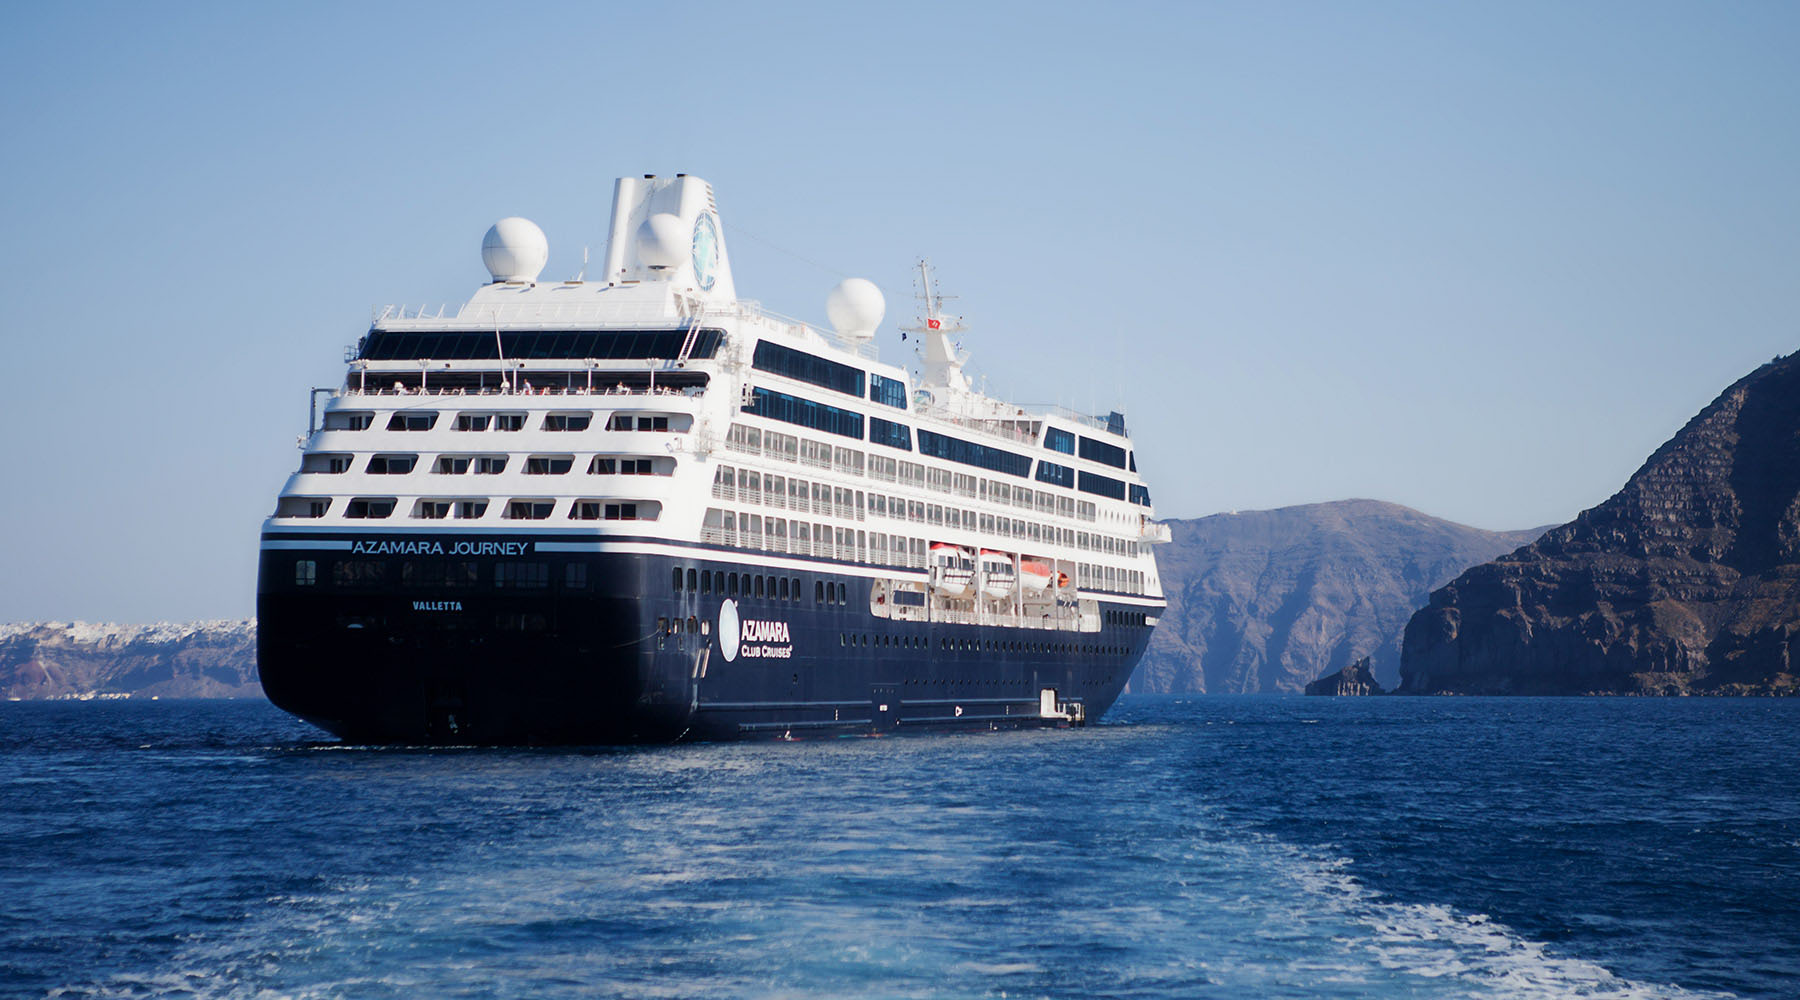 Aboard the Azamara Journey - Part Four